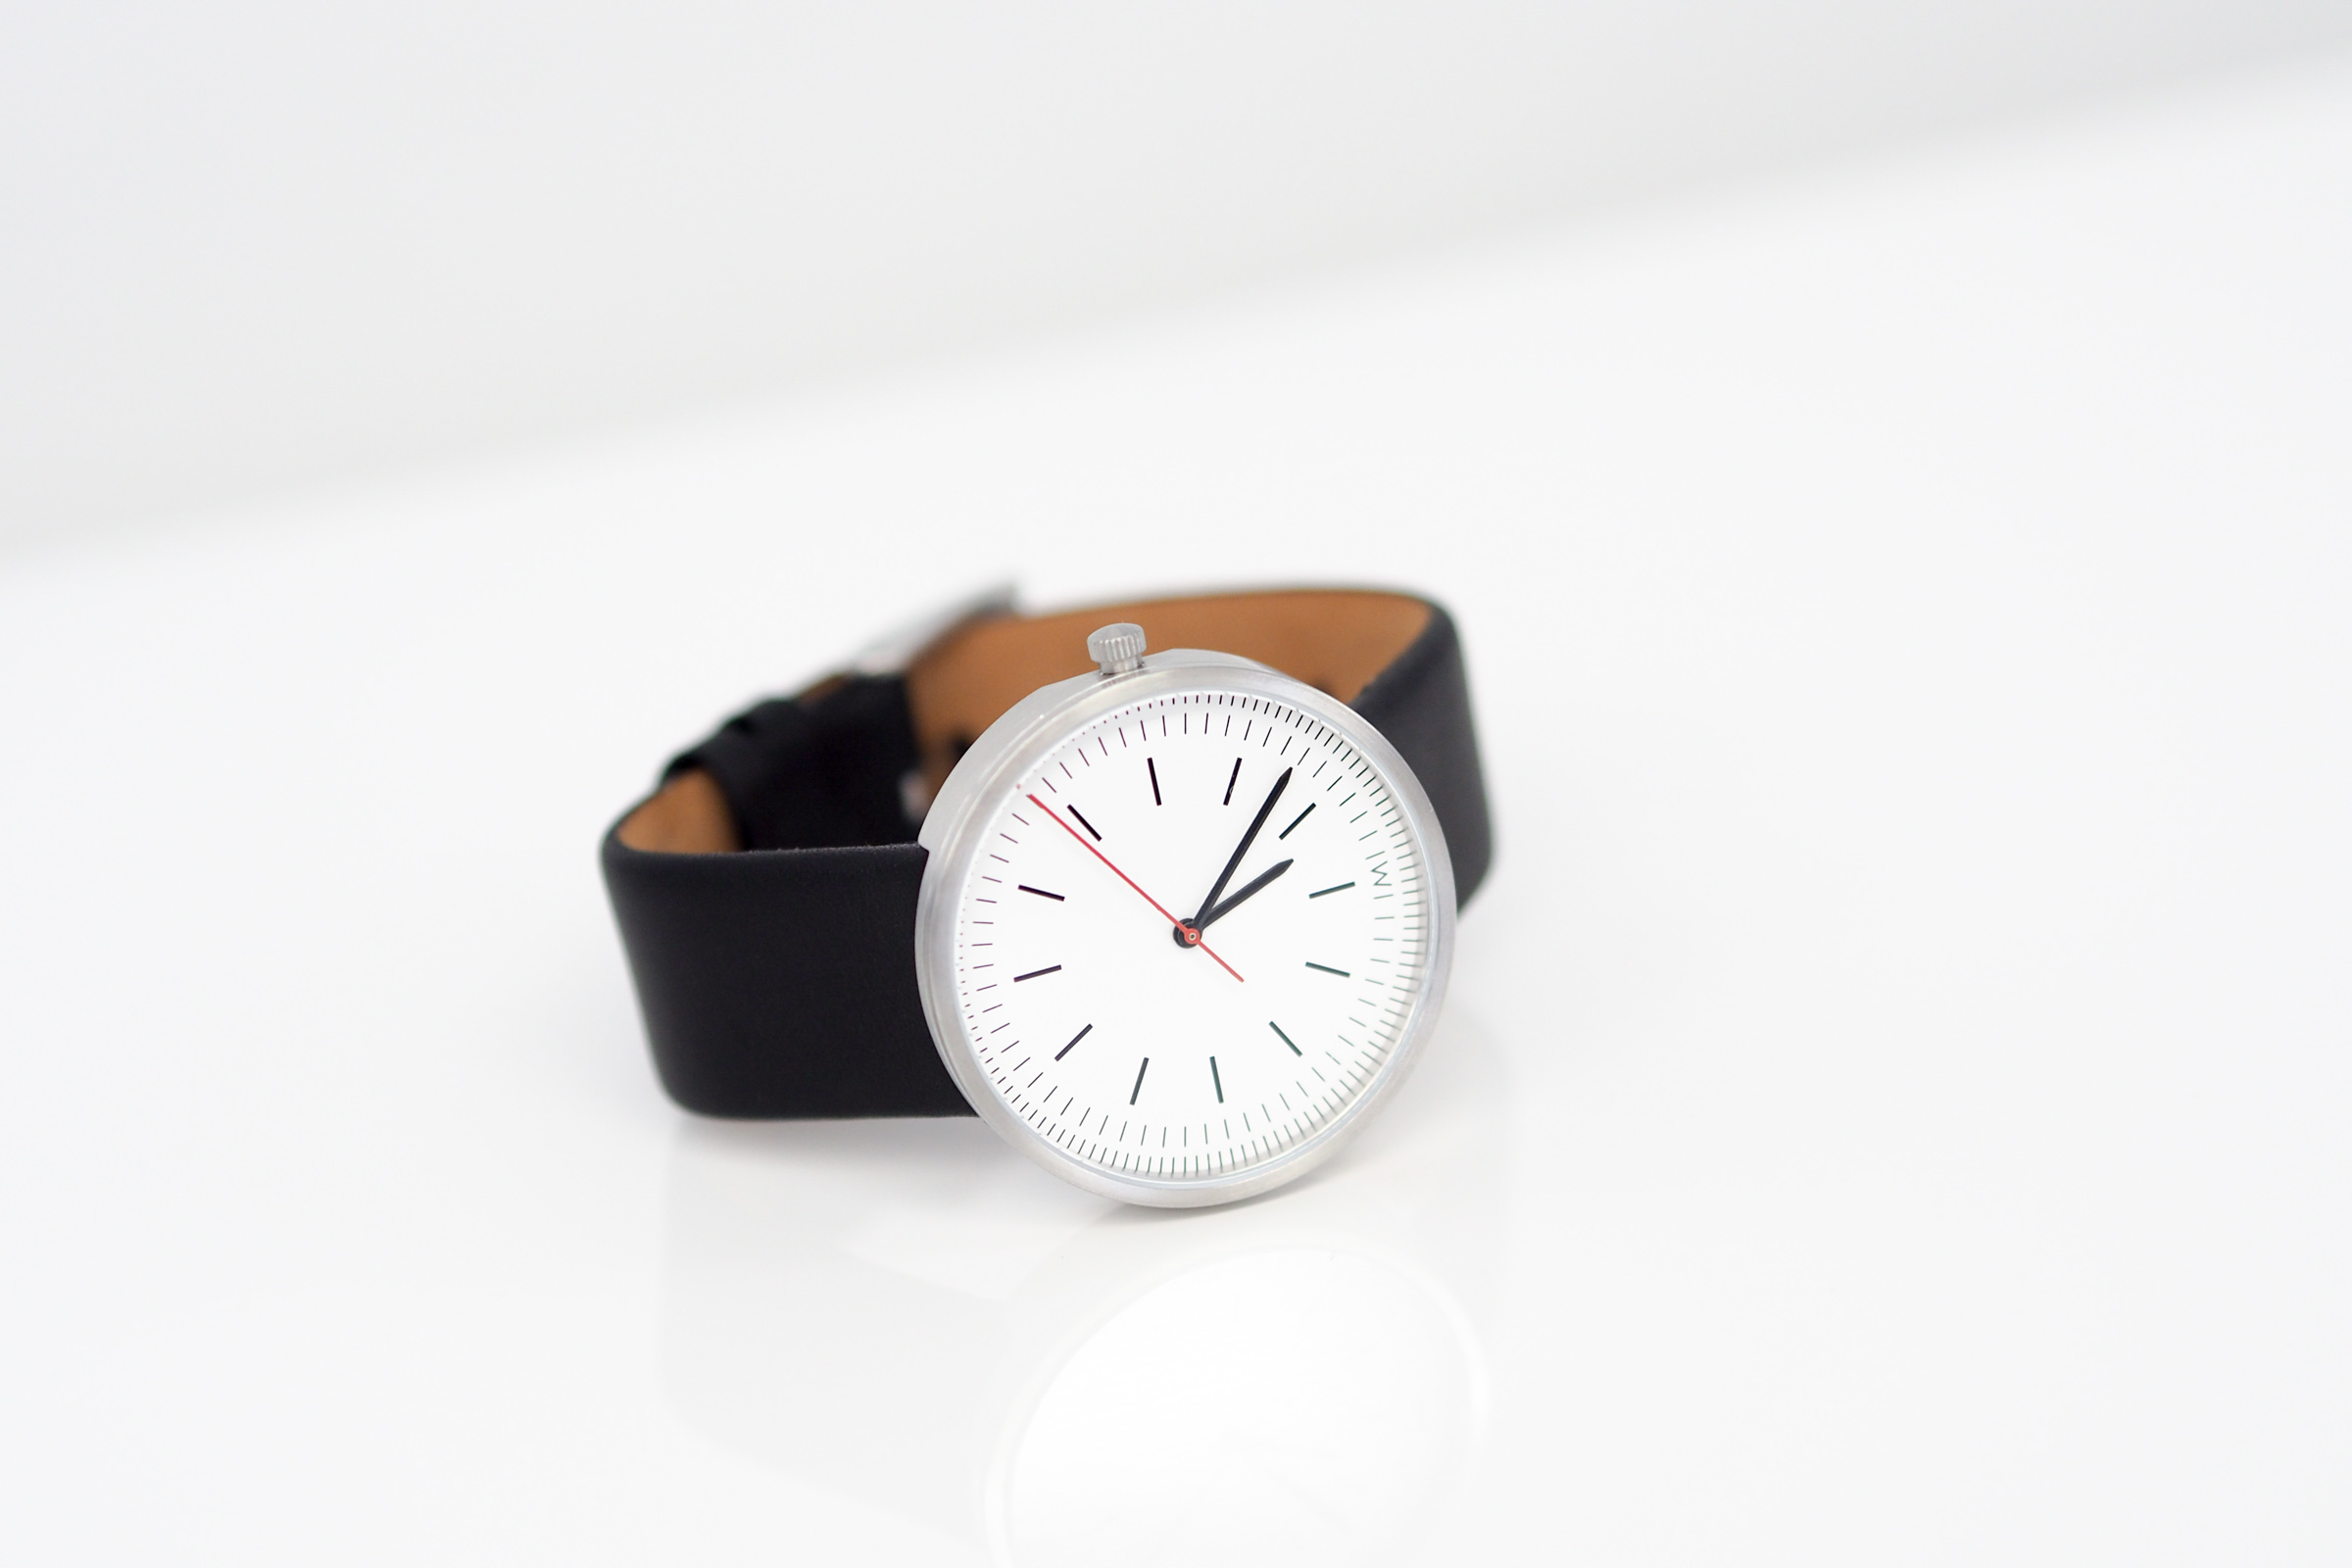 Mill Project | Understated Watch Design